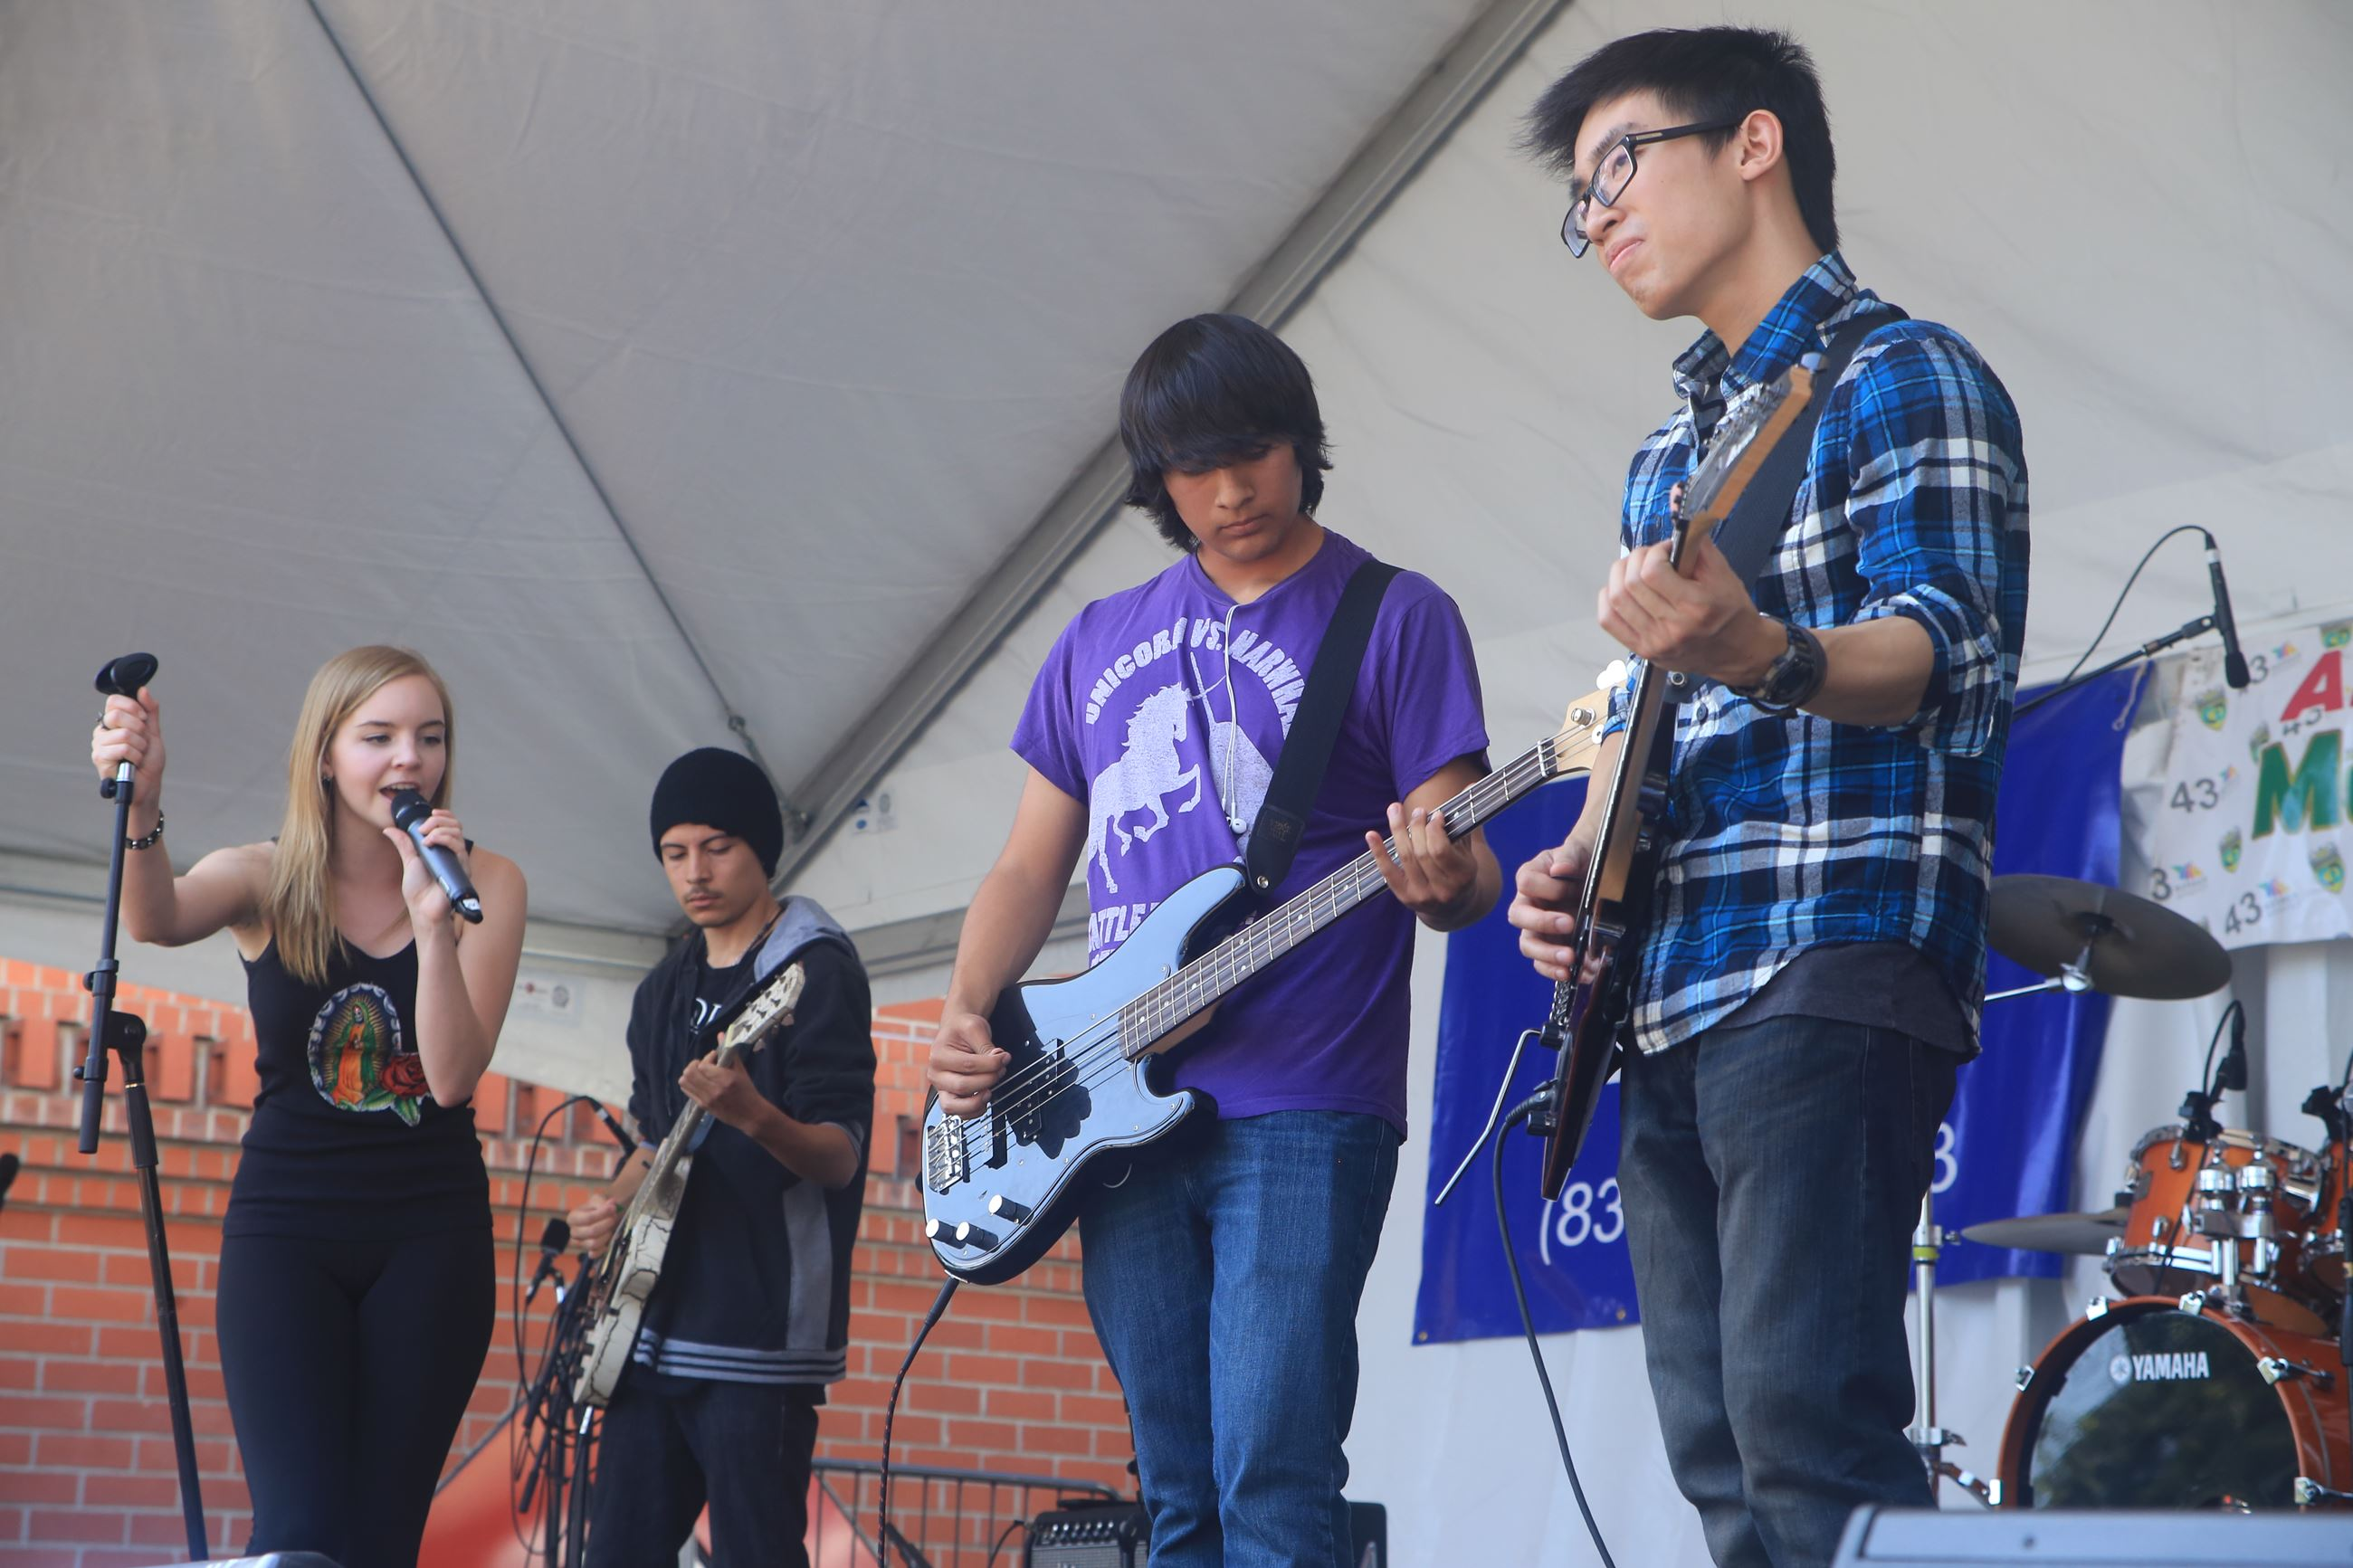 Teens playing and singing music on a stage